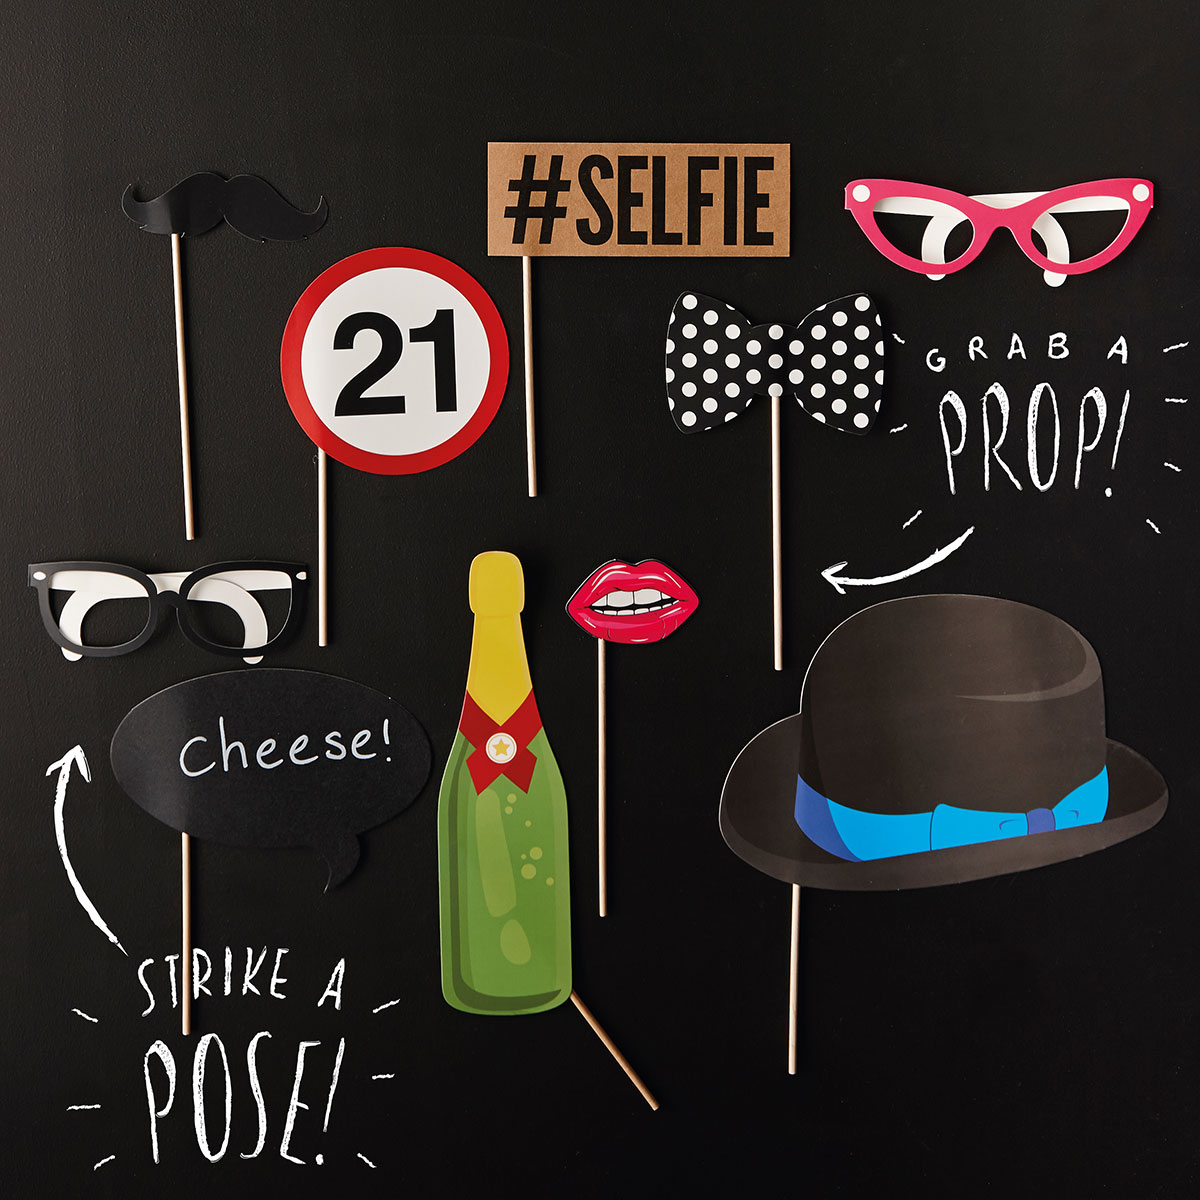 21st Birthday Photo Booth Props - 21st gift